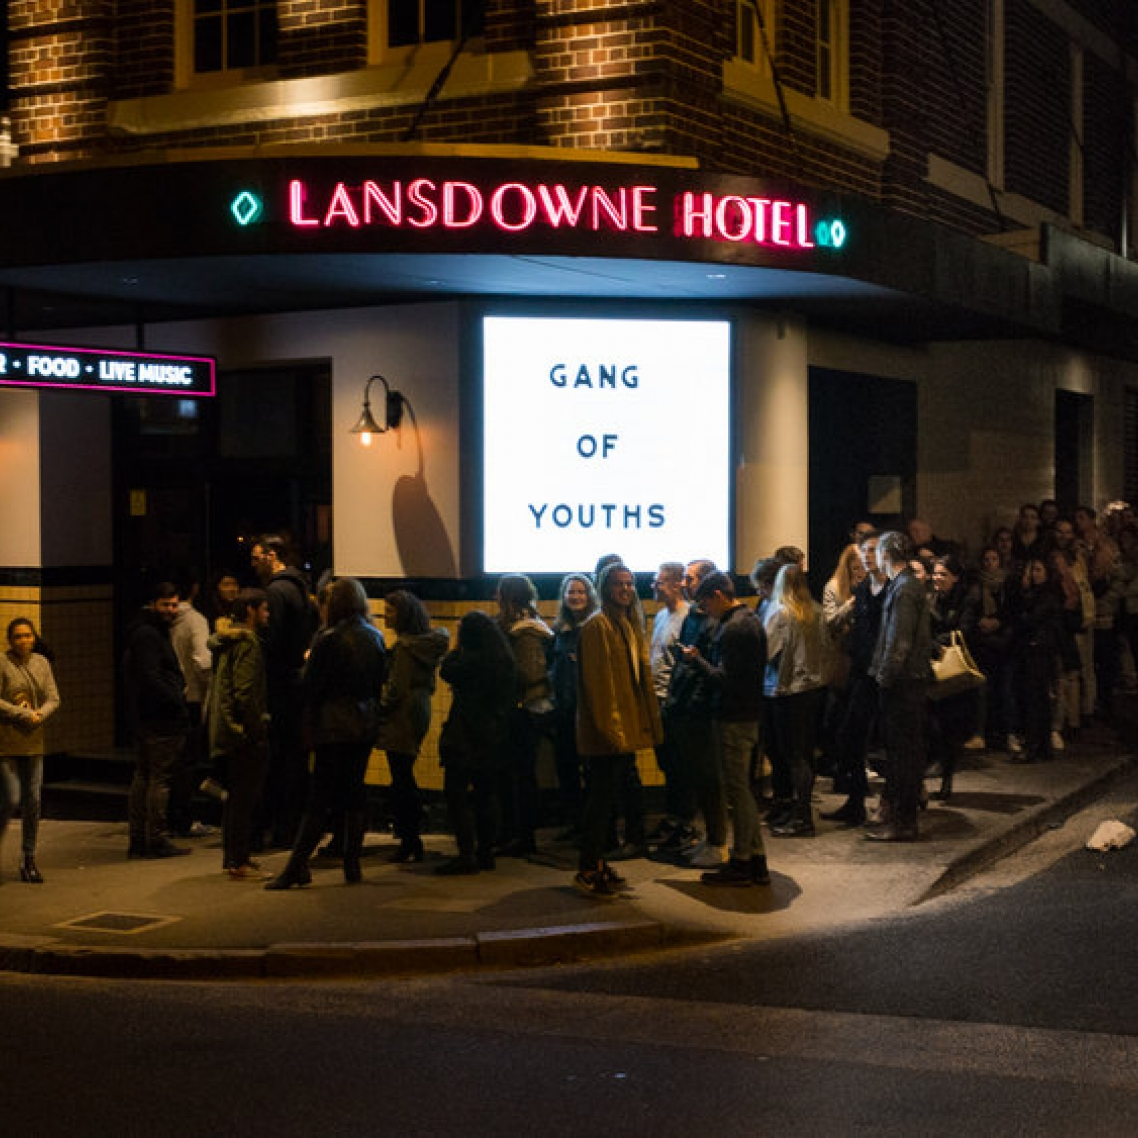 The Lansdowne Hotel Main Image